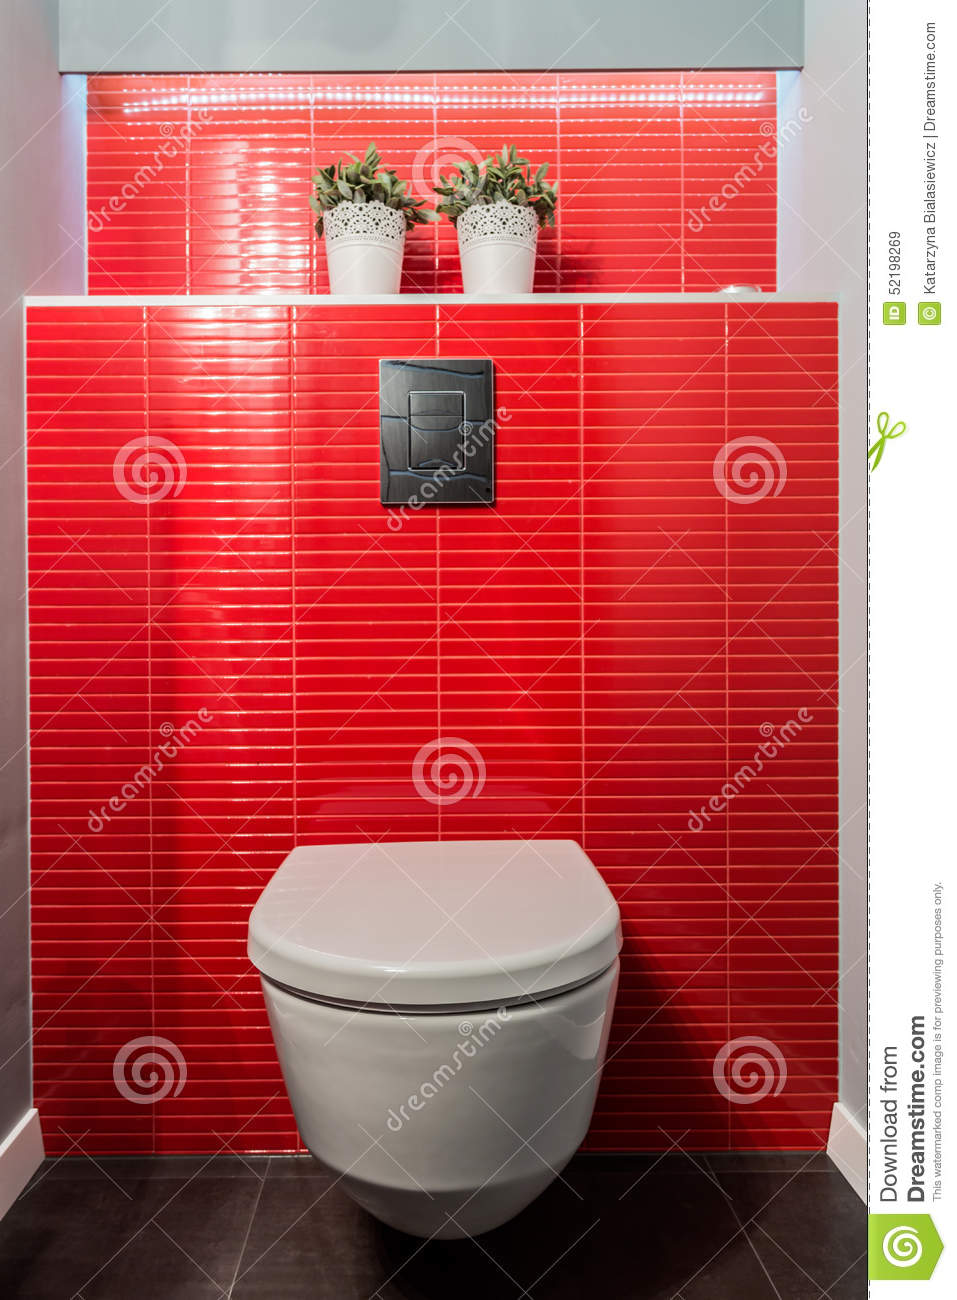 cuvette des toilettes tuiles rouges photo stock image 52198269. Black Bedroom Furniture Sets. Home Design Ideas